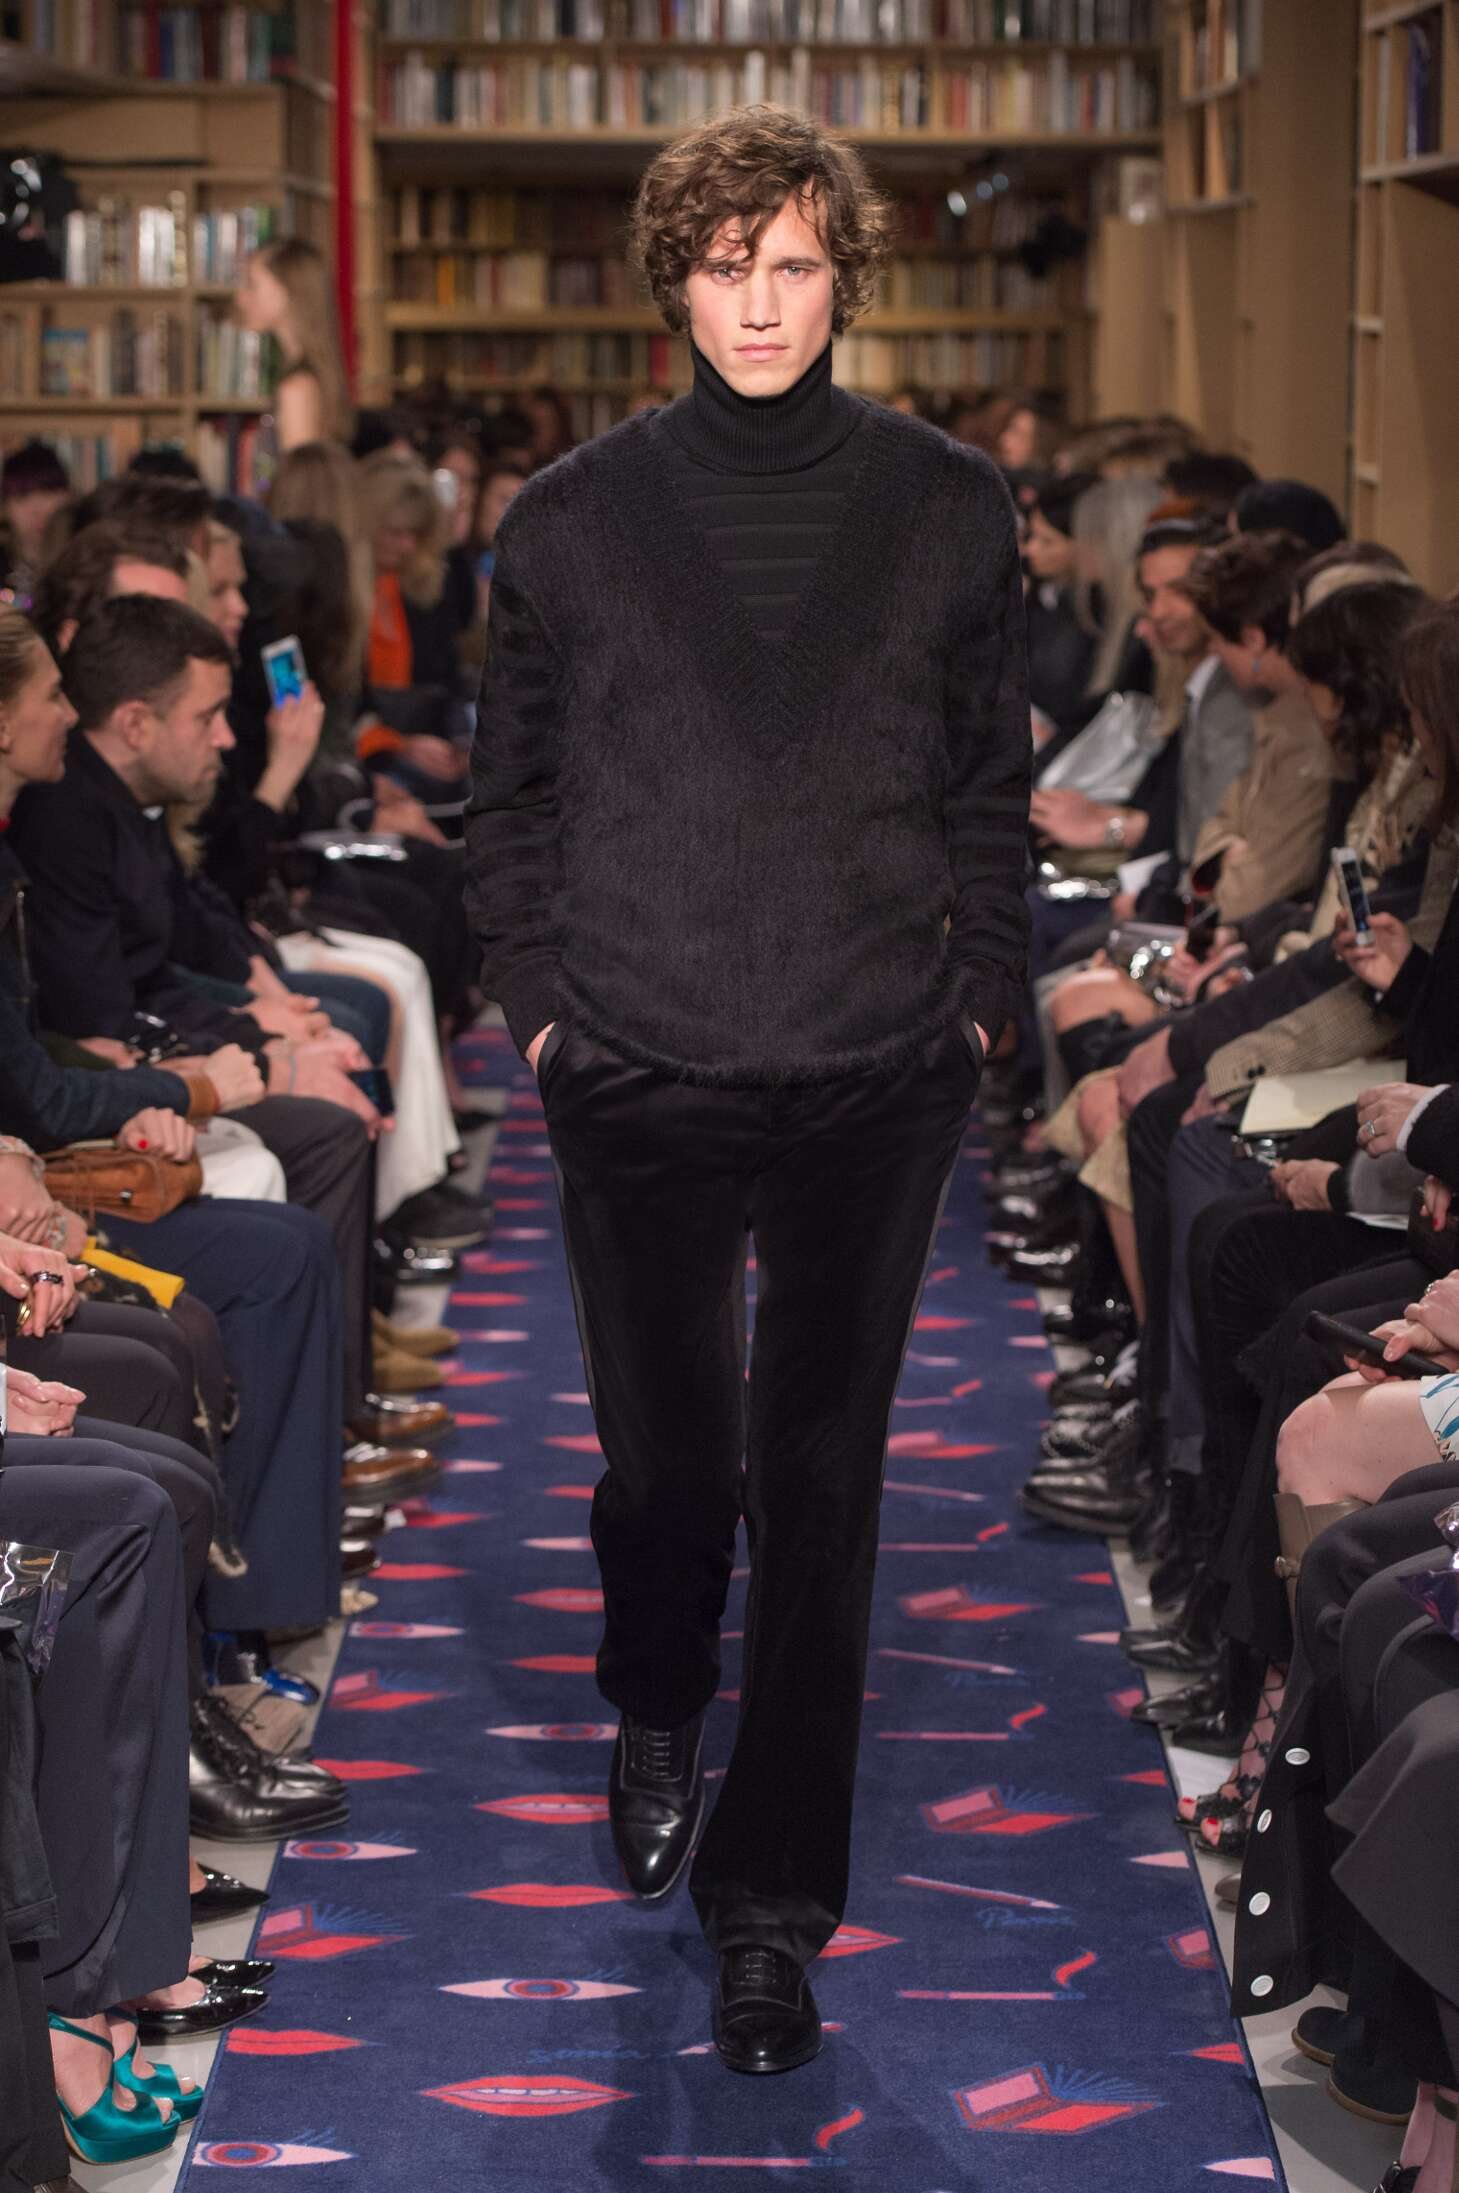 Sonia Rykiel Fall Winter 2015 16 Women's Collection Paris Fashion Week